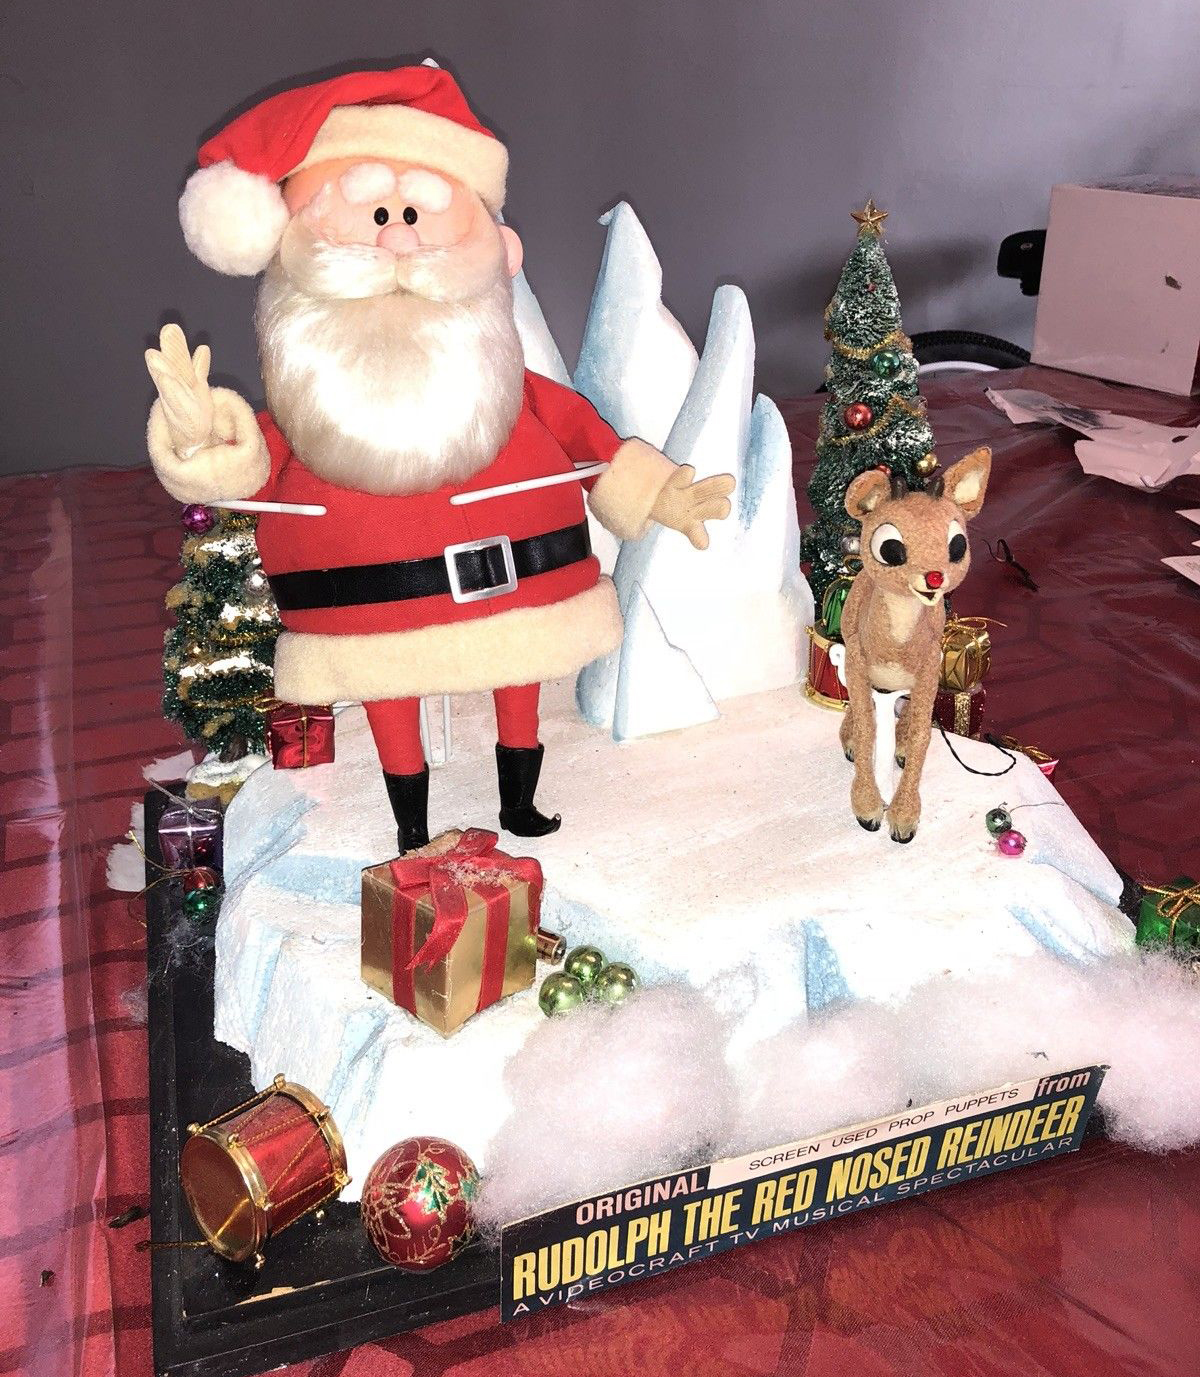 Rudolph Christmas Movie Characters.Original Rankin Bass Rudolph Puppets Up For Sale But Have